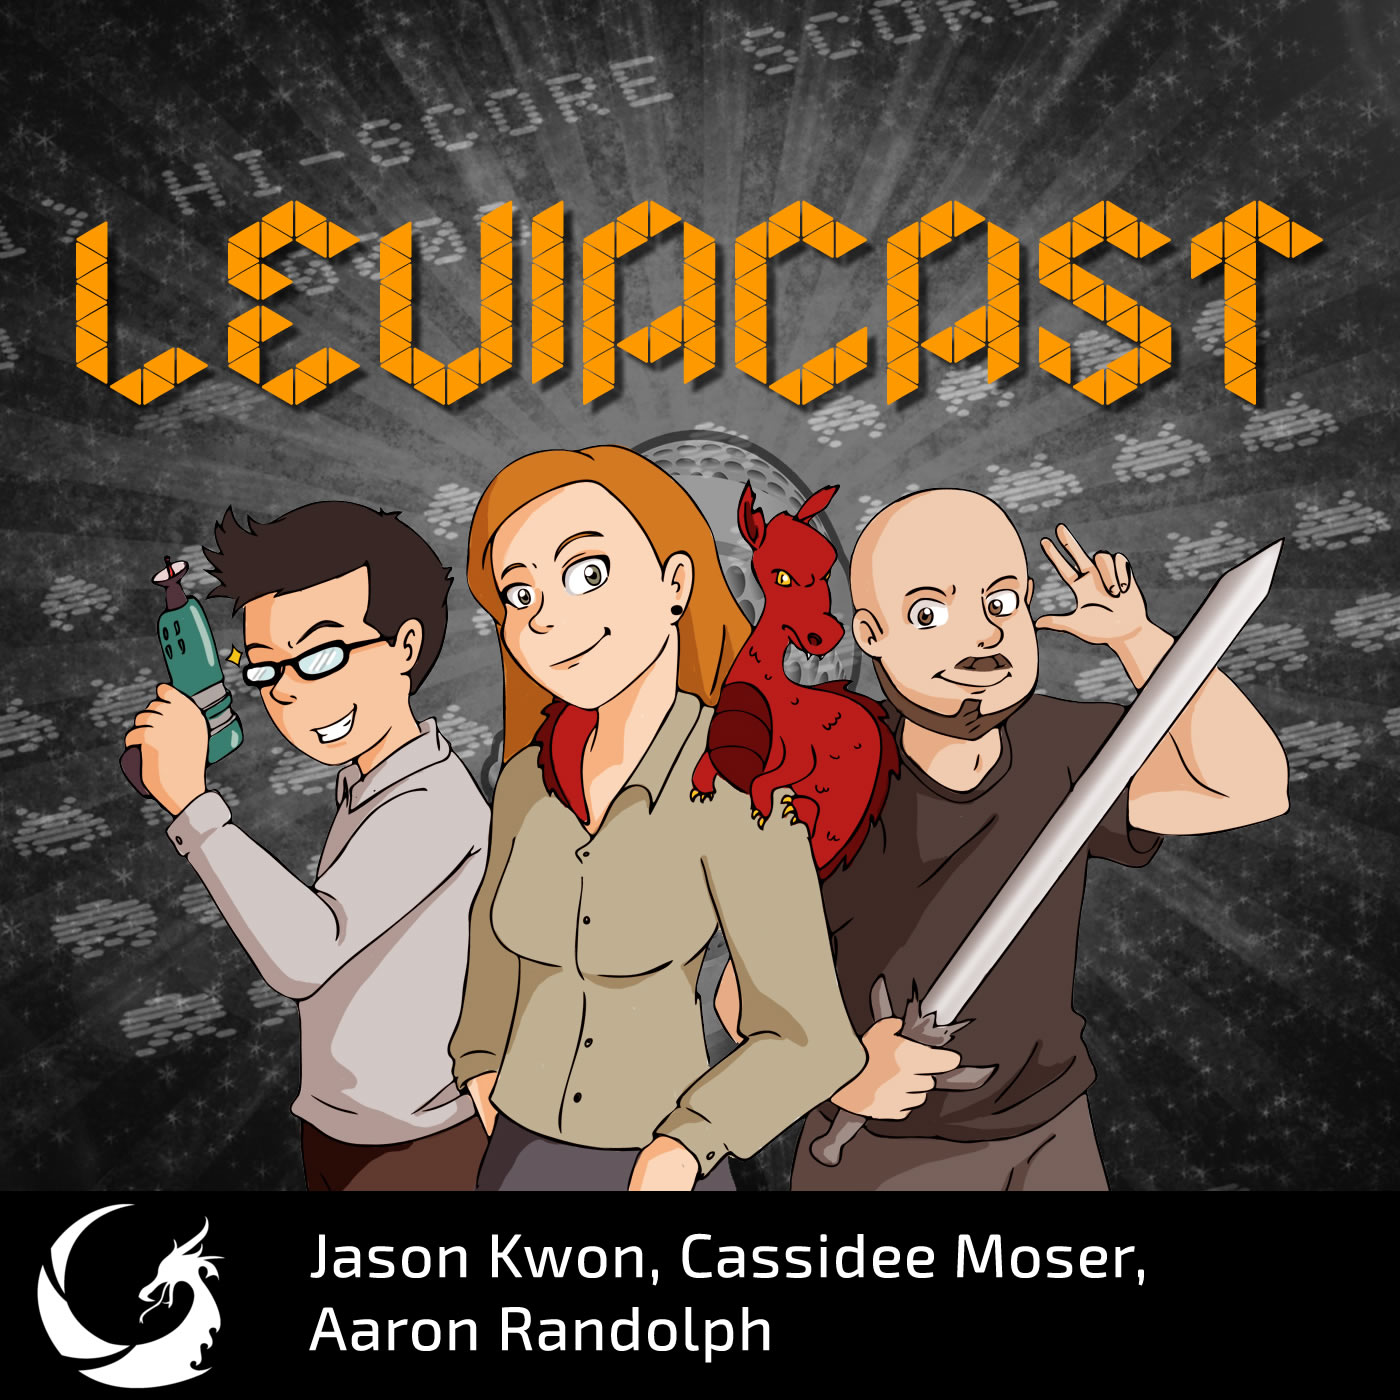 Leviacast Ep. 99: Monster Hunter 4, Celebrating the PS2's 15th Birthday